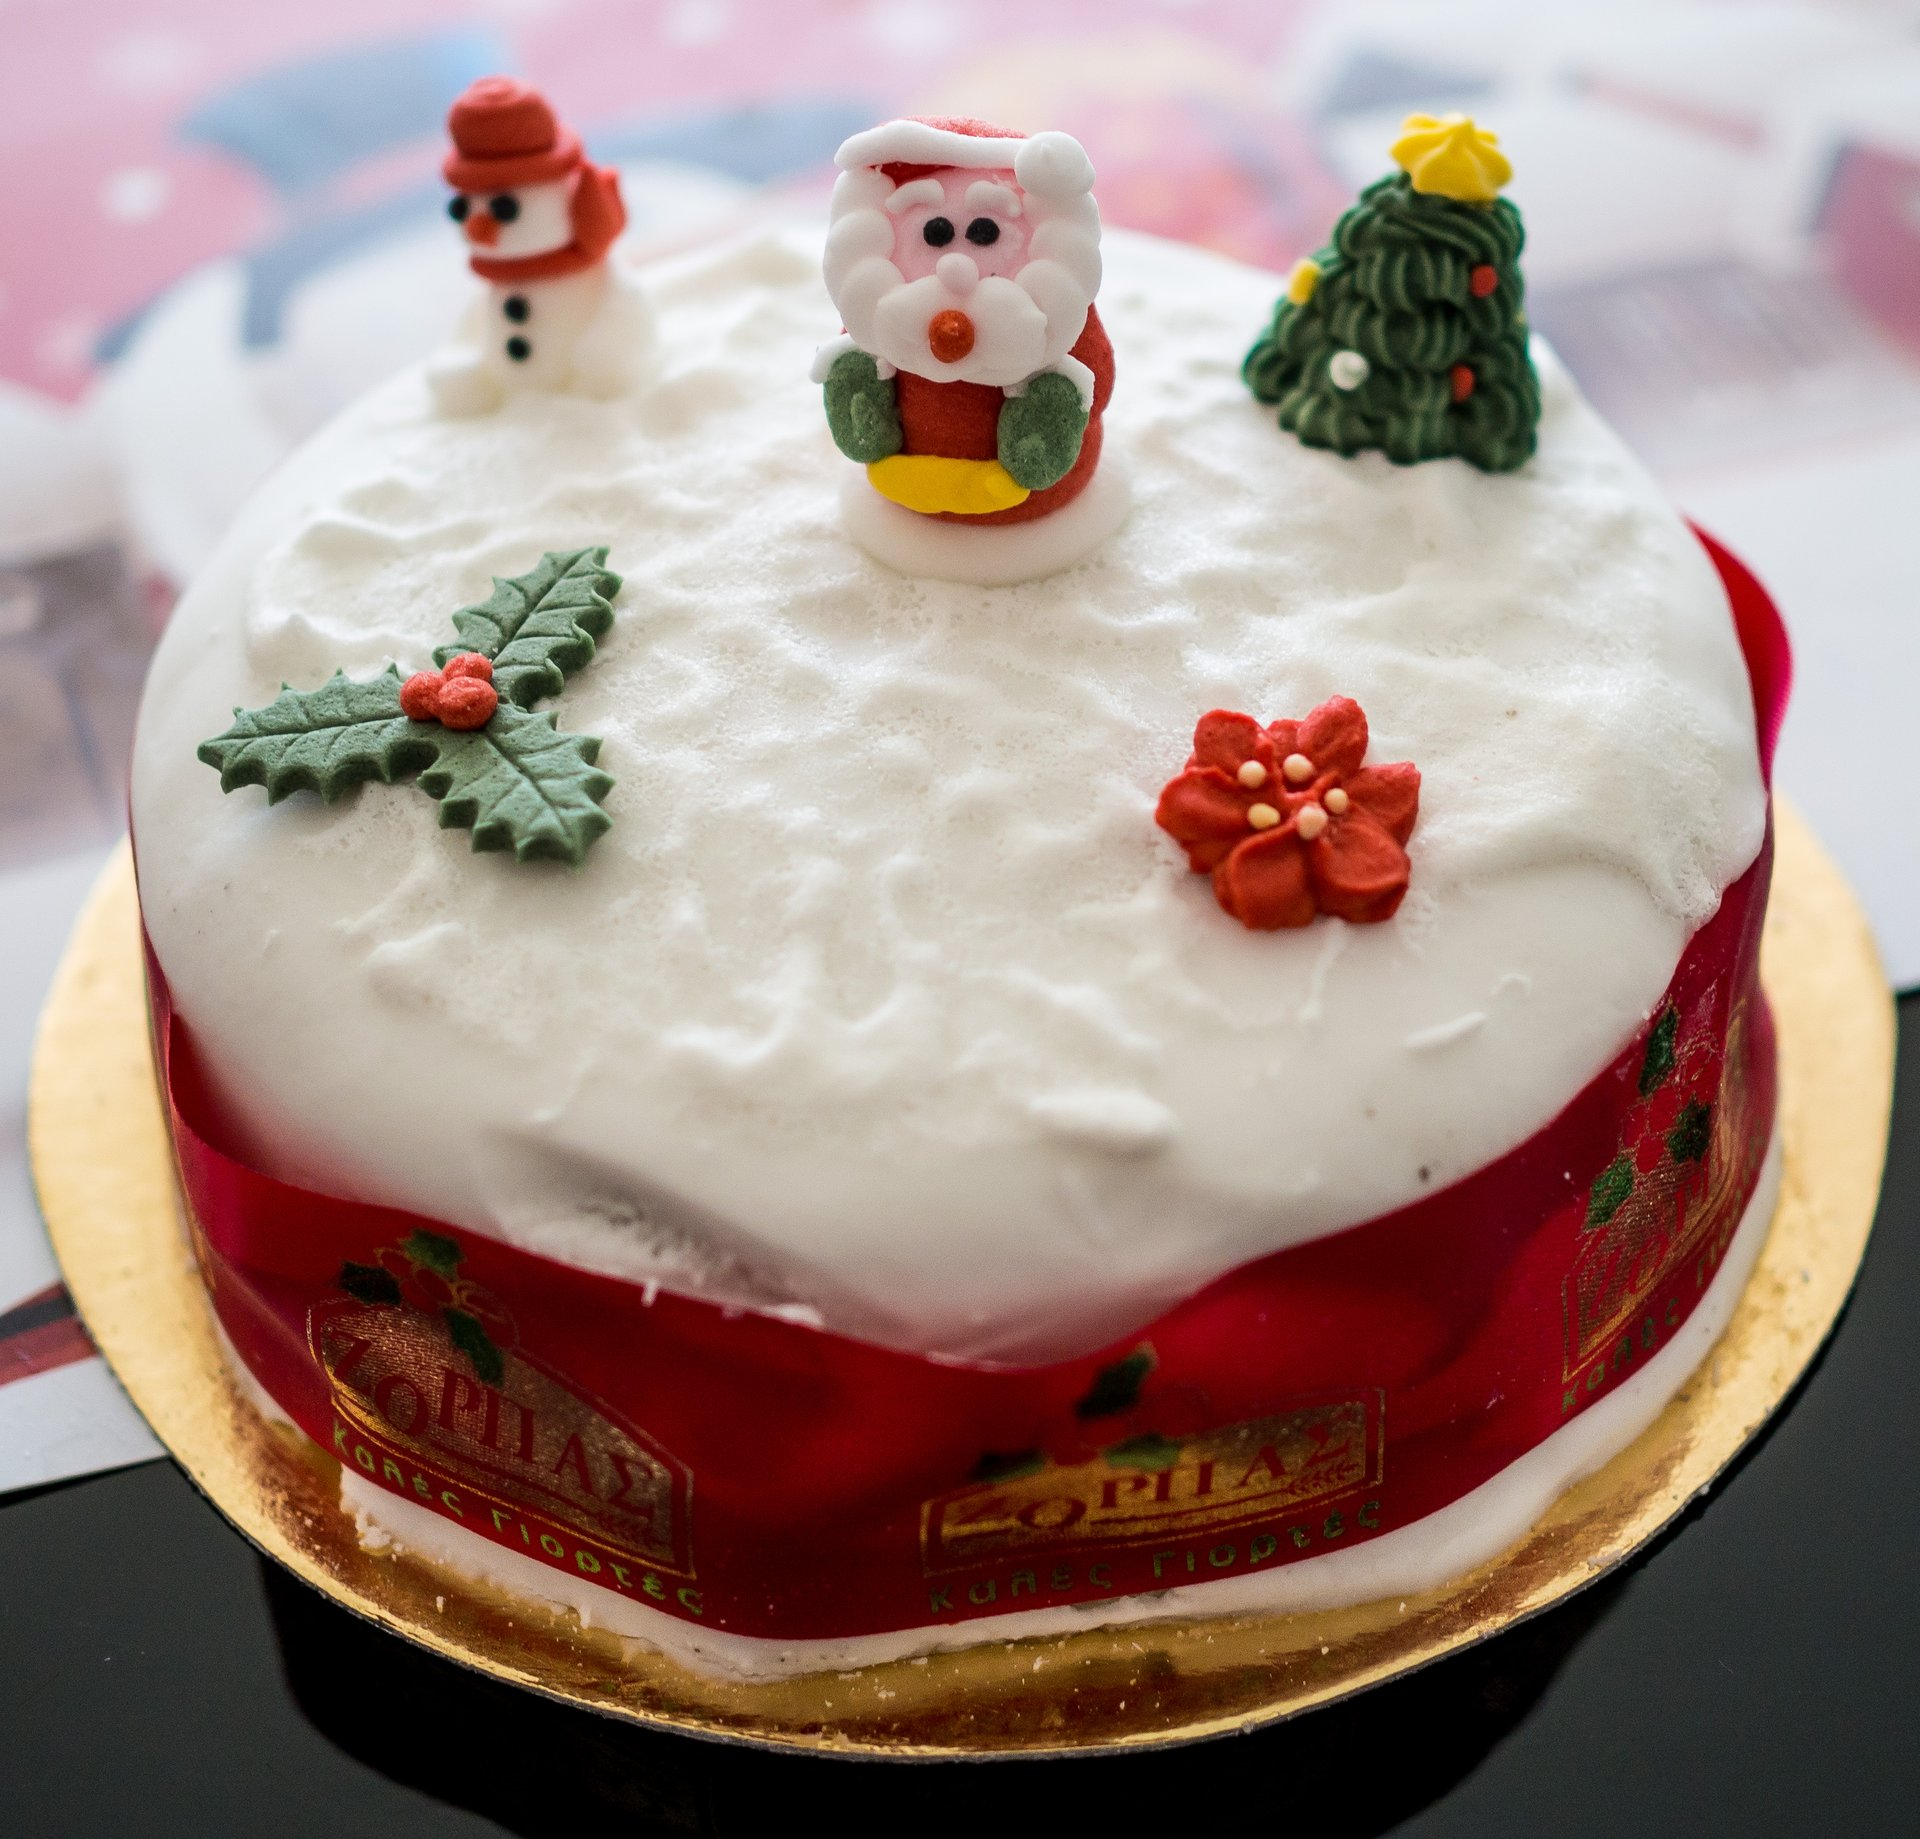 Christmas Cake in Cyprus 2020 - Best Time